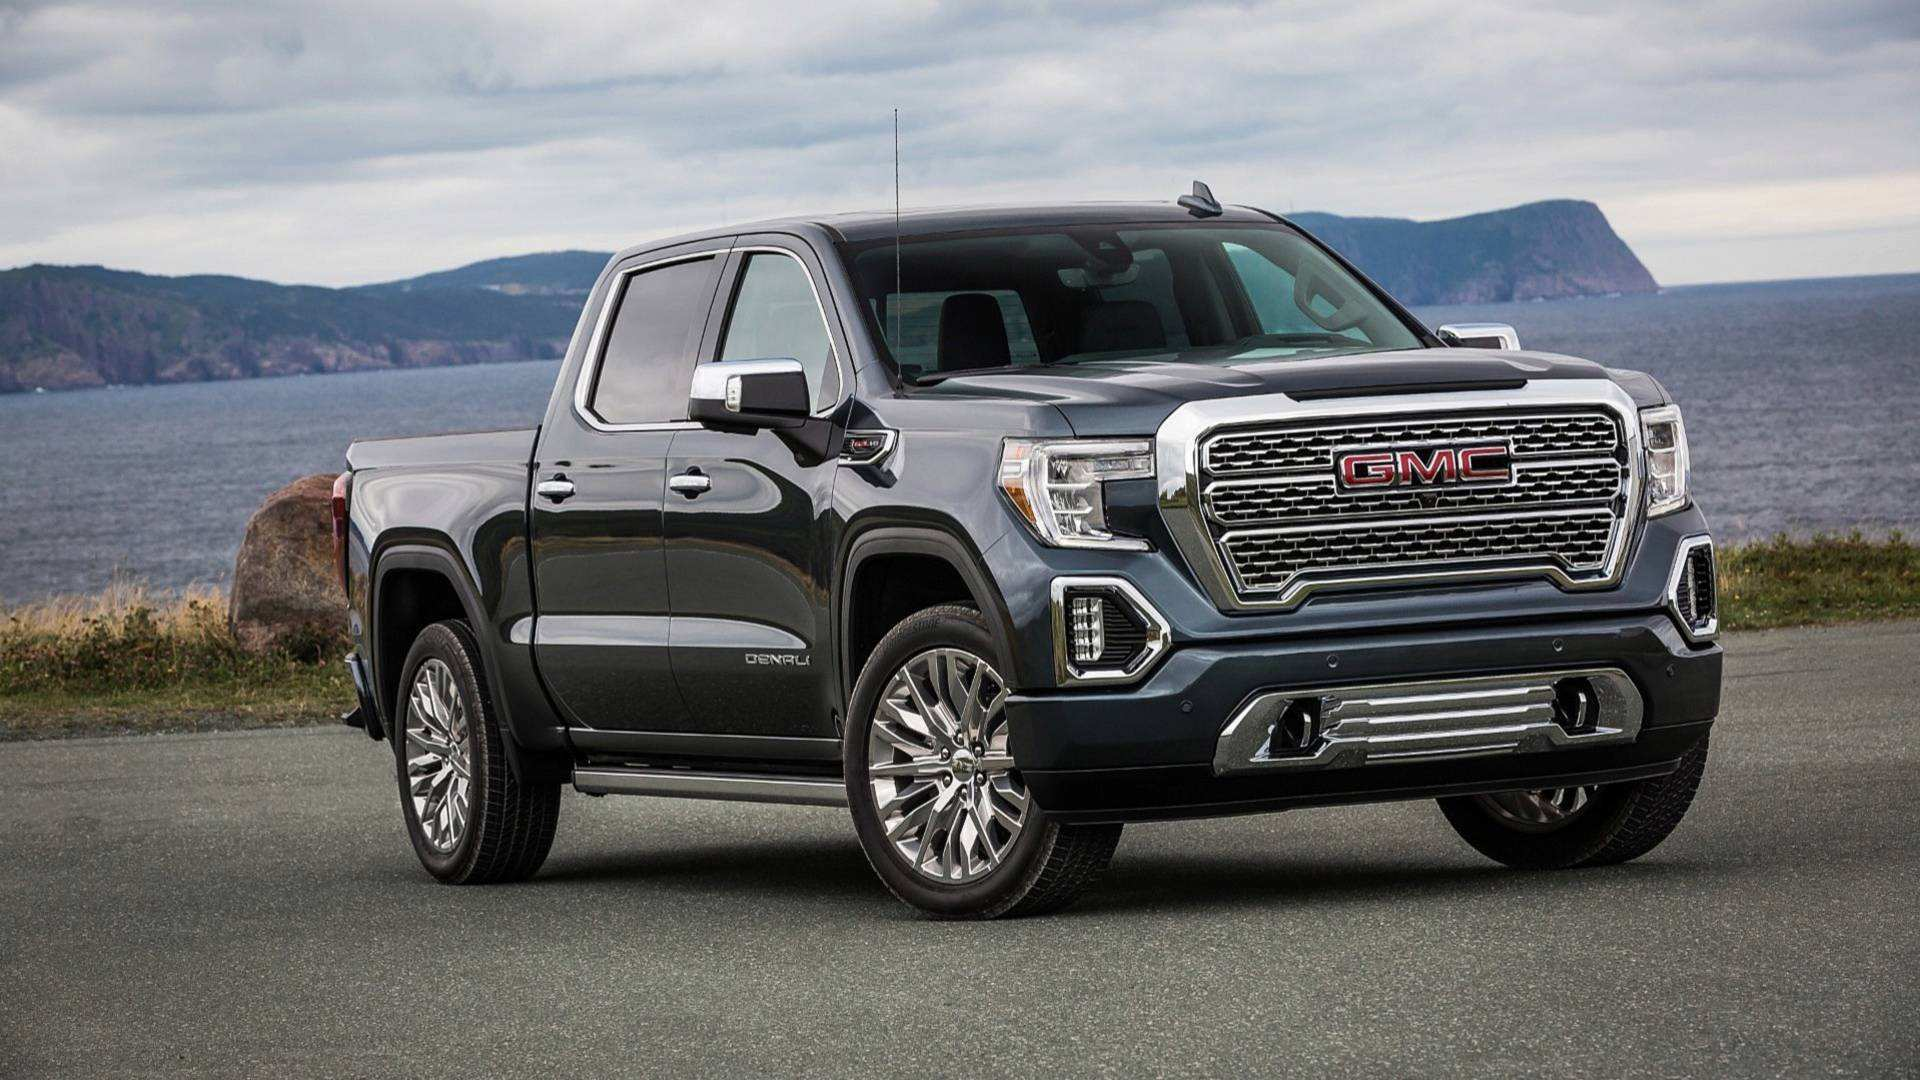 15 Great New Gmc 2019 Sierra 1500 First Drive Research New by New Gmc 2019 Sierra 1500 First Drive